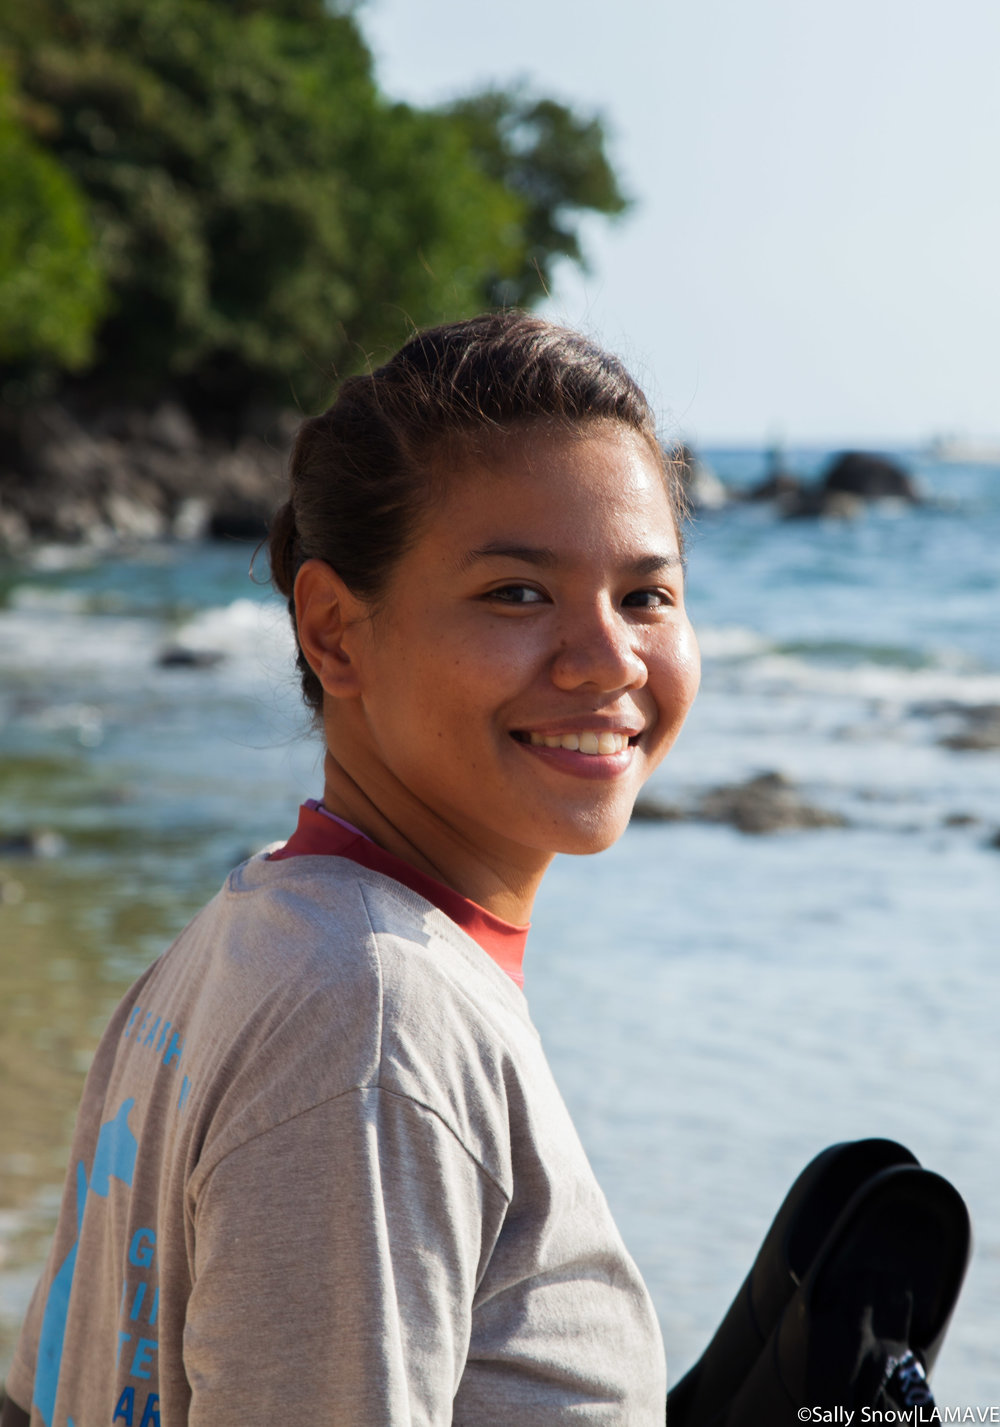 Sue Andrey Ong    Project Leader: Apo Island Turtles Research and Conservation Project   Sue is Filipina marine conservationist. She came from Cagayan de Oro City, Misamis Oriental, Mindanao. Sue was studying Biology at Xavier University located in her hometown. She is passionate about large marine mammals and she just joined LAMAVE as a Project Leader of Apo Island Turtles Research and Conservation Project.   BSc. Biology – Xavier University – Ateneo de Cagayan, Cagayan de Oro City, Philippines